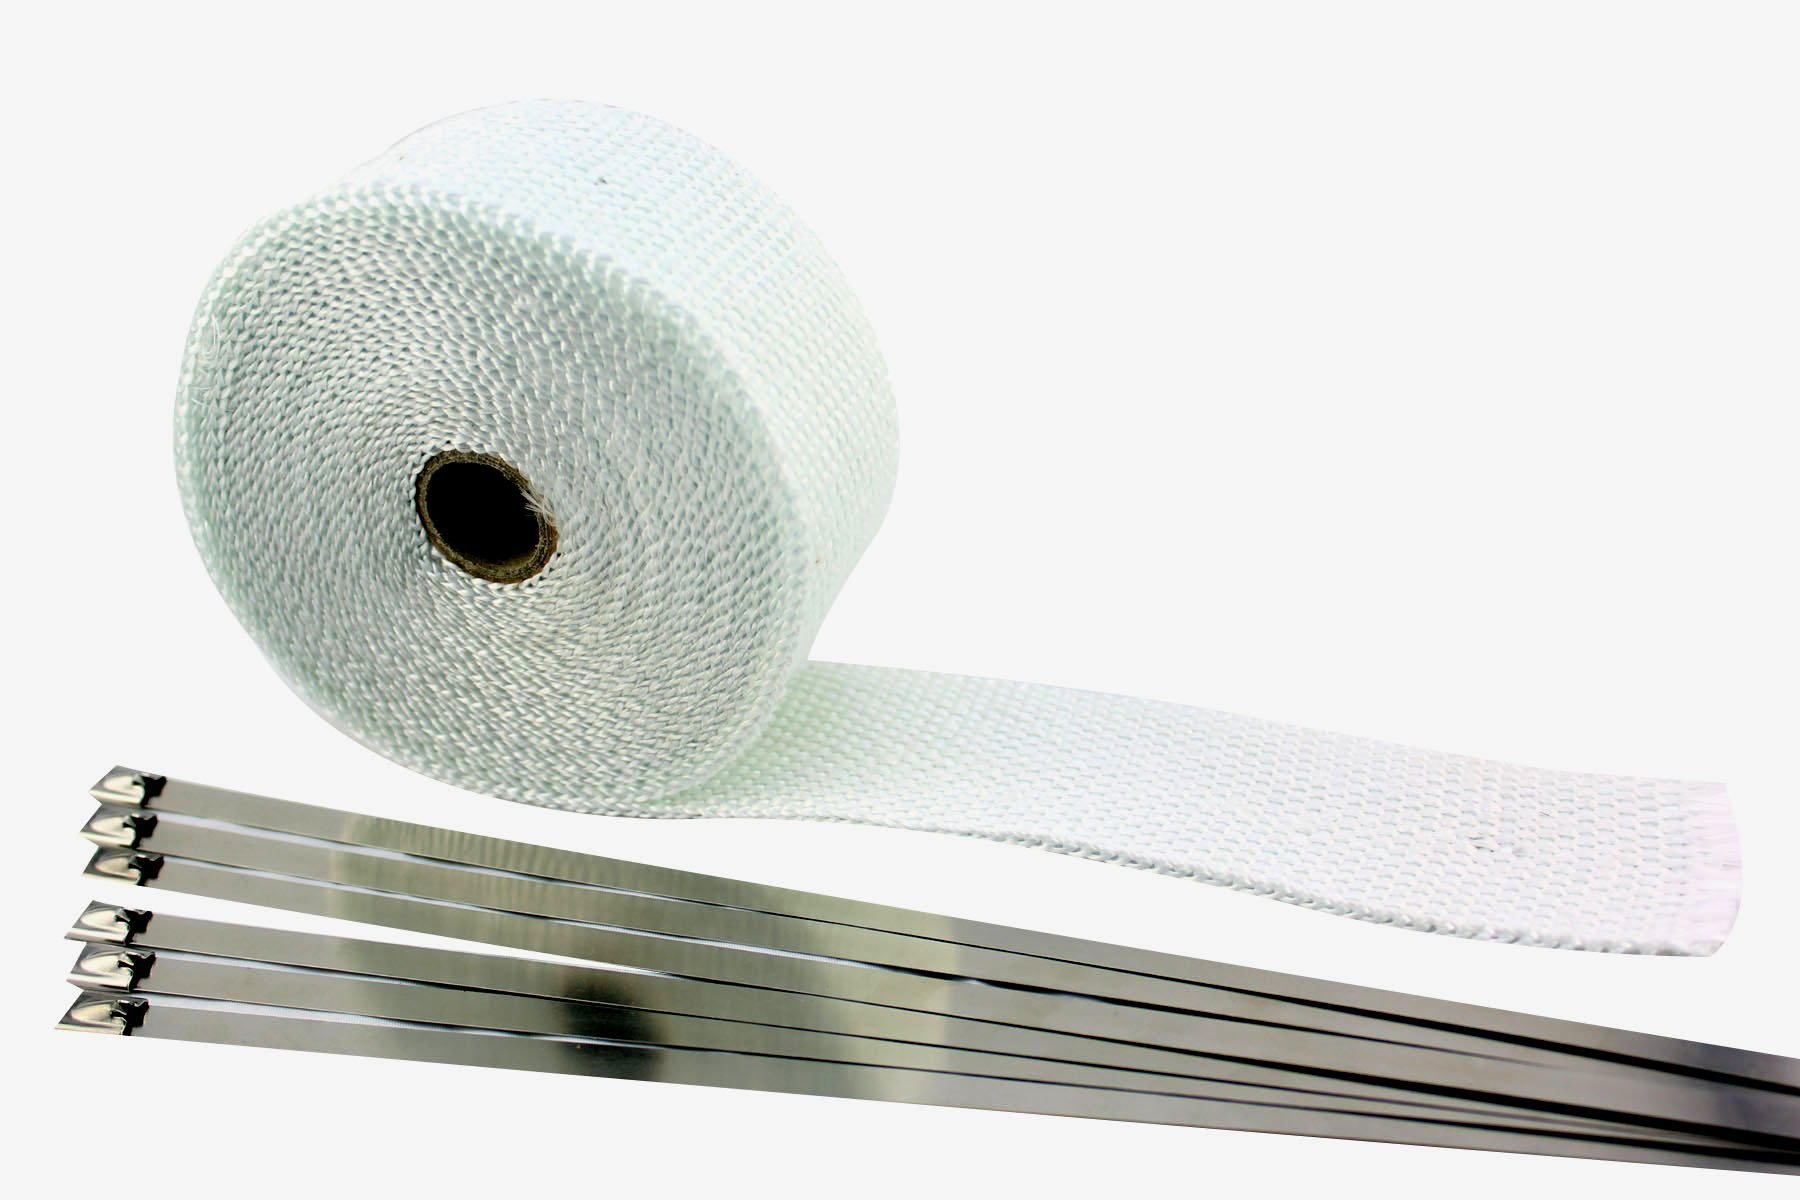 SWI Parts 2'' x25ft Roll White Racing Fiberglass Exhaust Header Pipe Wrap Tape W/6 Stainless Steel Zip Ties by SWI